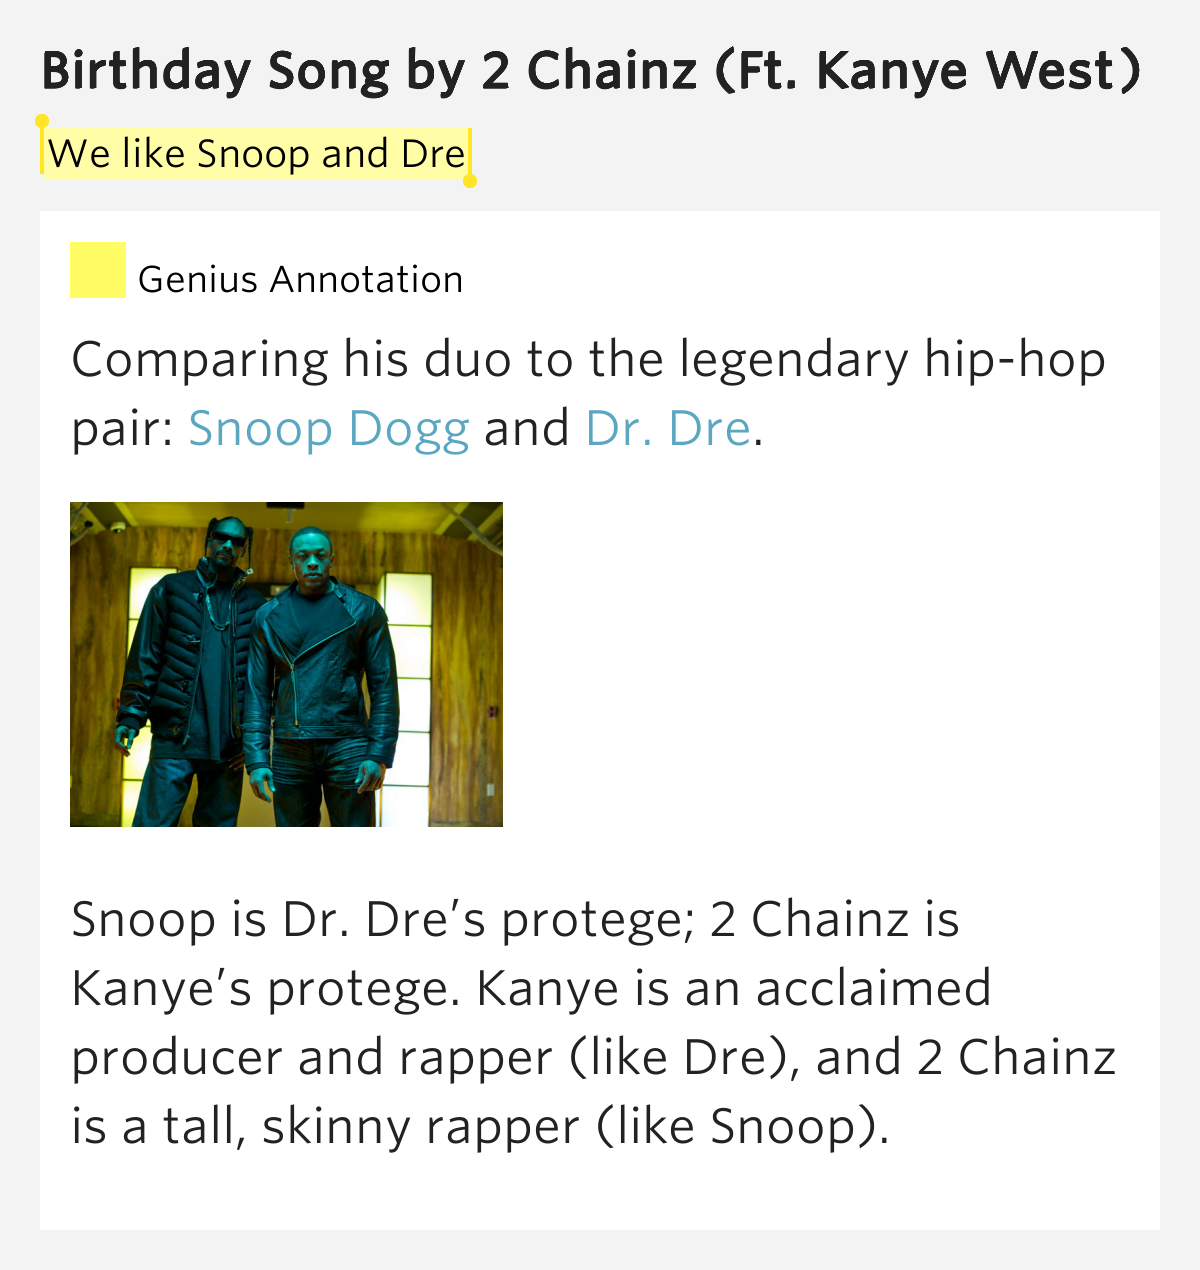 Birthday Song By 2 Chainz